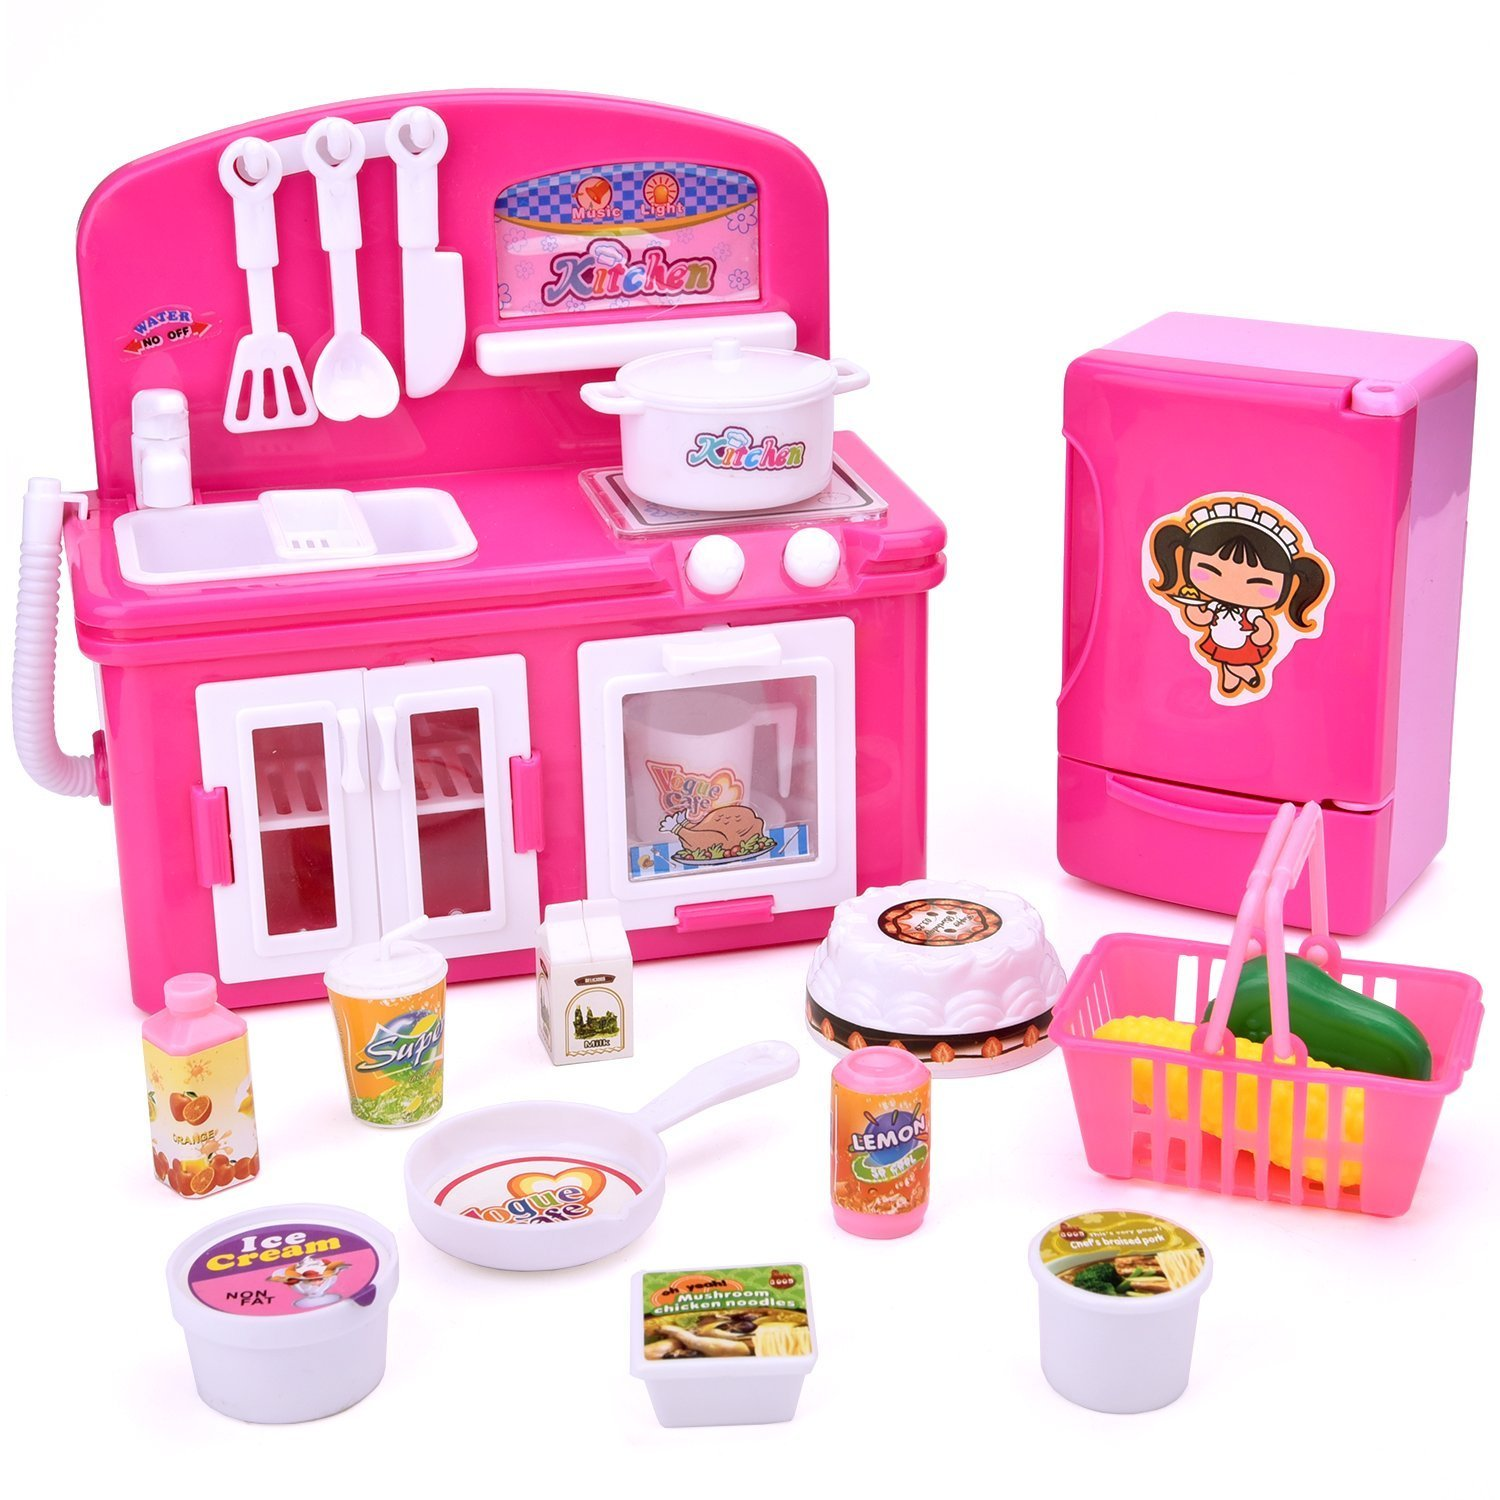 19 PCs Kitchen Appliance Toys with Kitchen, Refrigerator, Pot and Tableware, Pretend Play Set for Kids, Play Kitchen Appliance